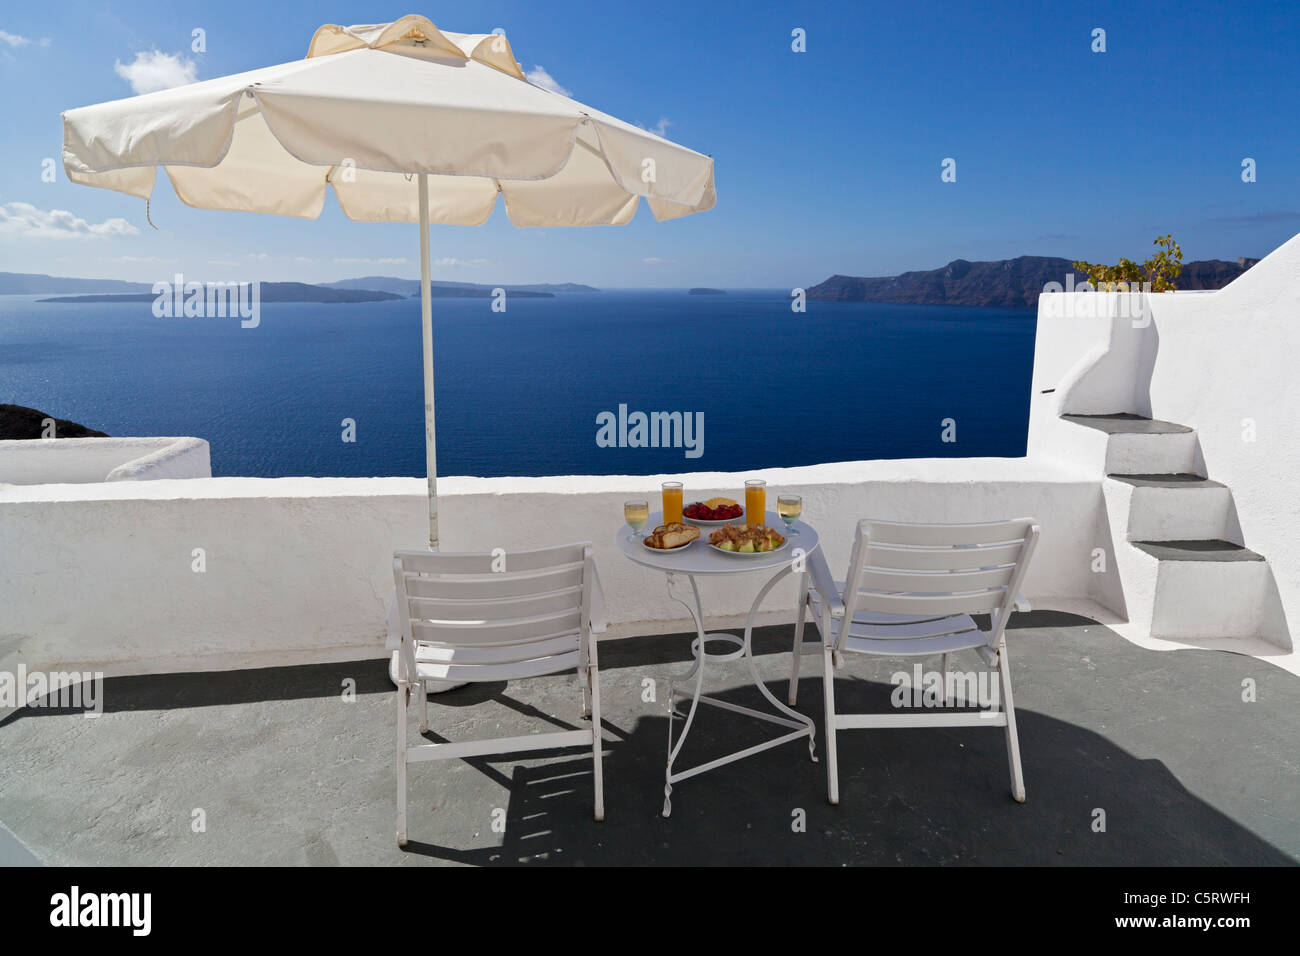 Greece, Cyclades,Thira, Santorini, Oia, Sunshade and furniture with food on terrace, blue sea in background - Stock Image